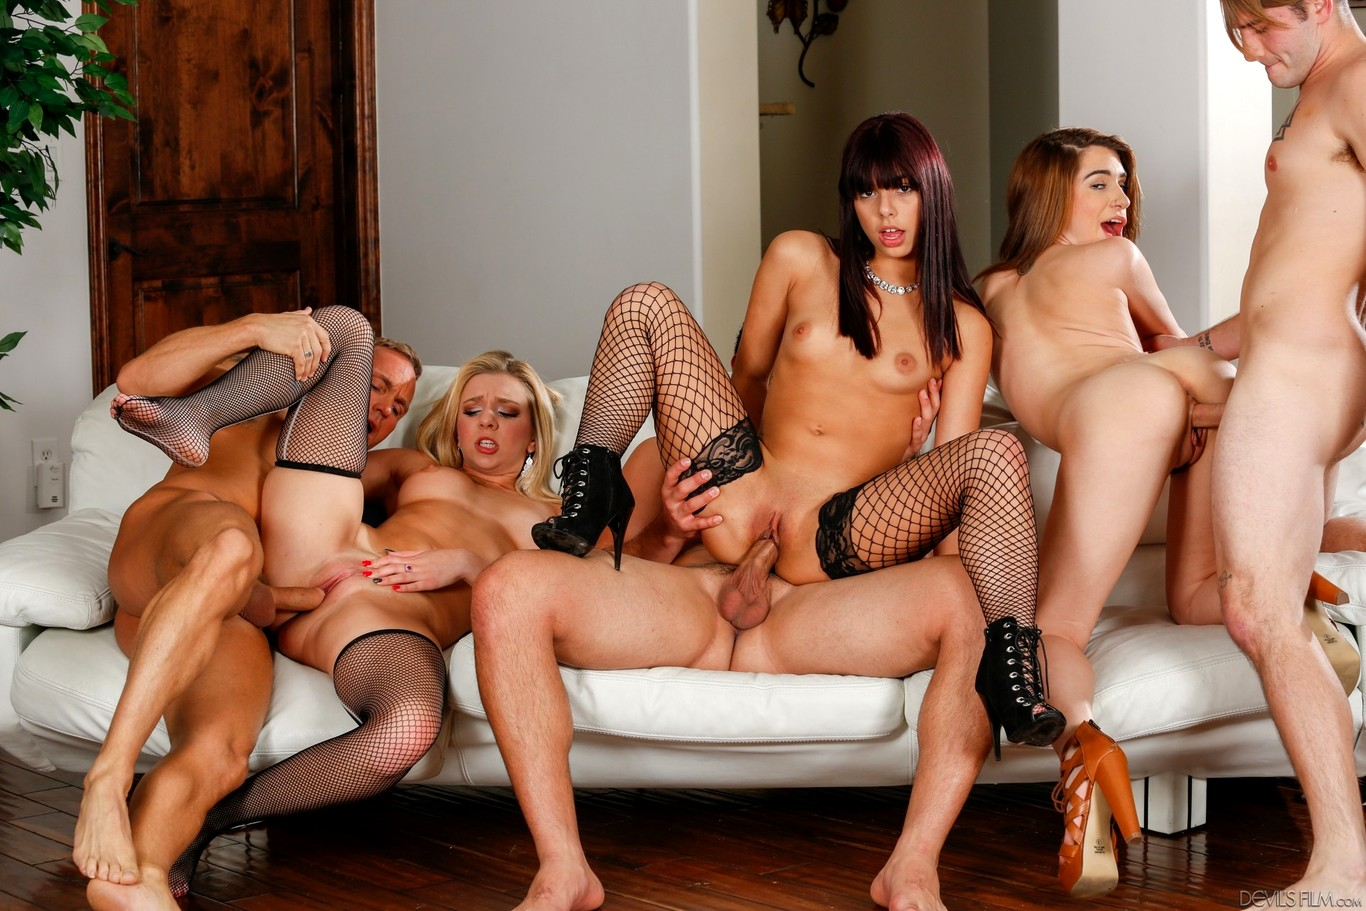 Buckhannon group sex — 1